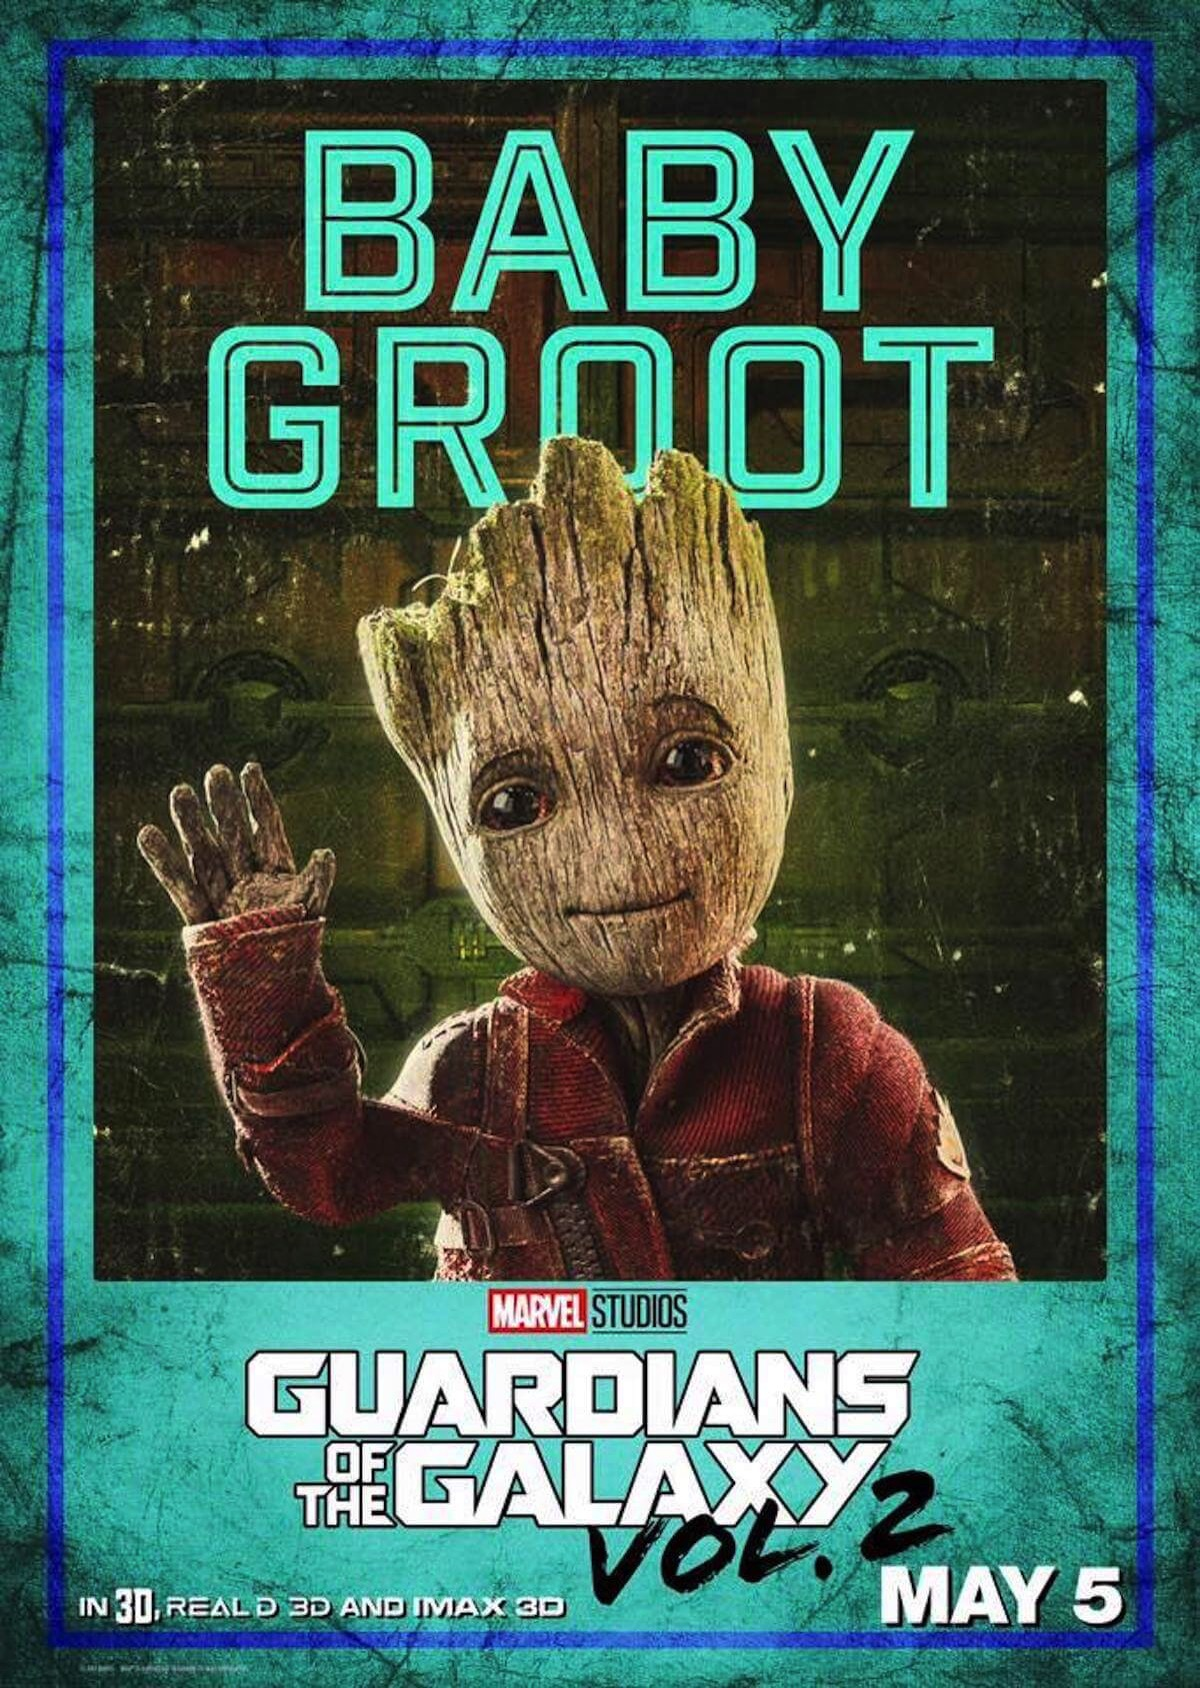 Guardians of the galaxy 2 poster baby groot vin diesel